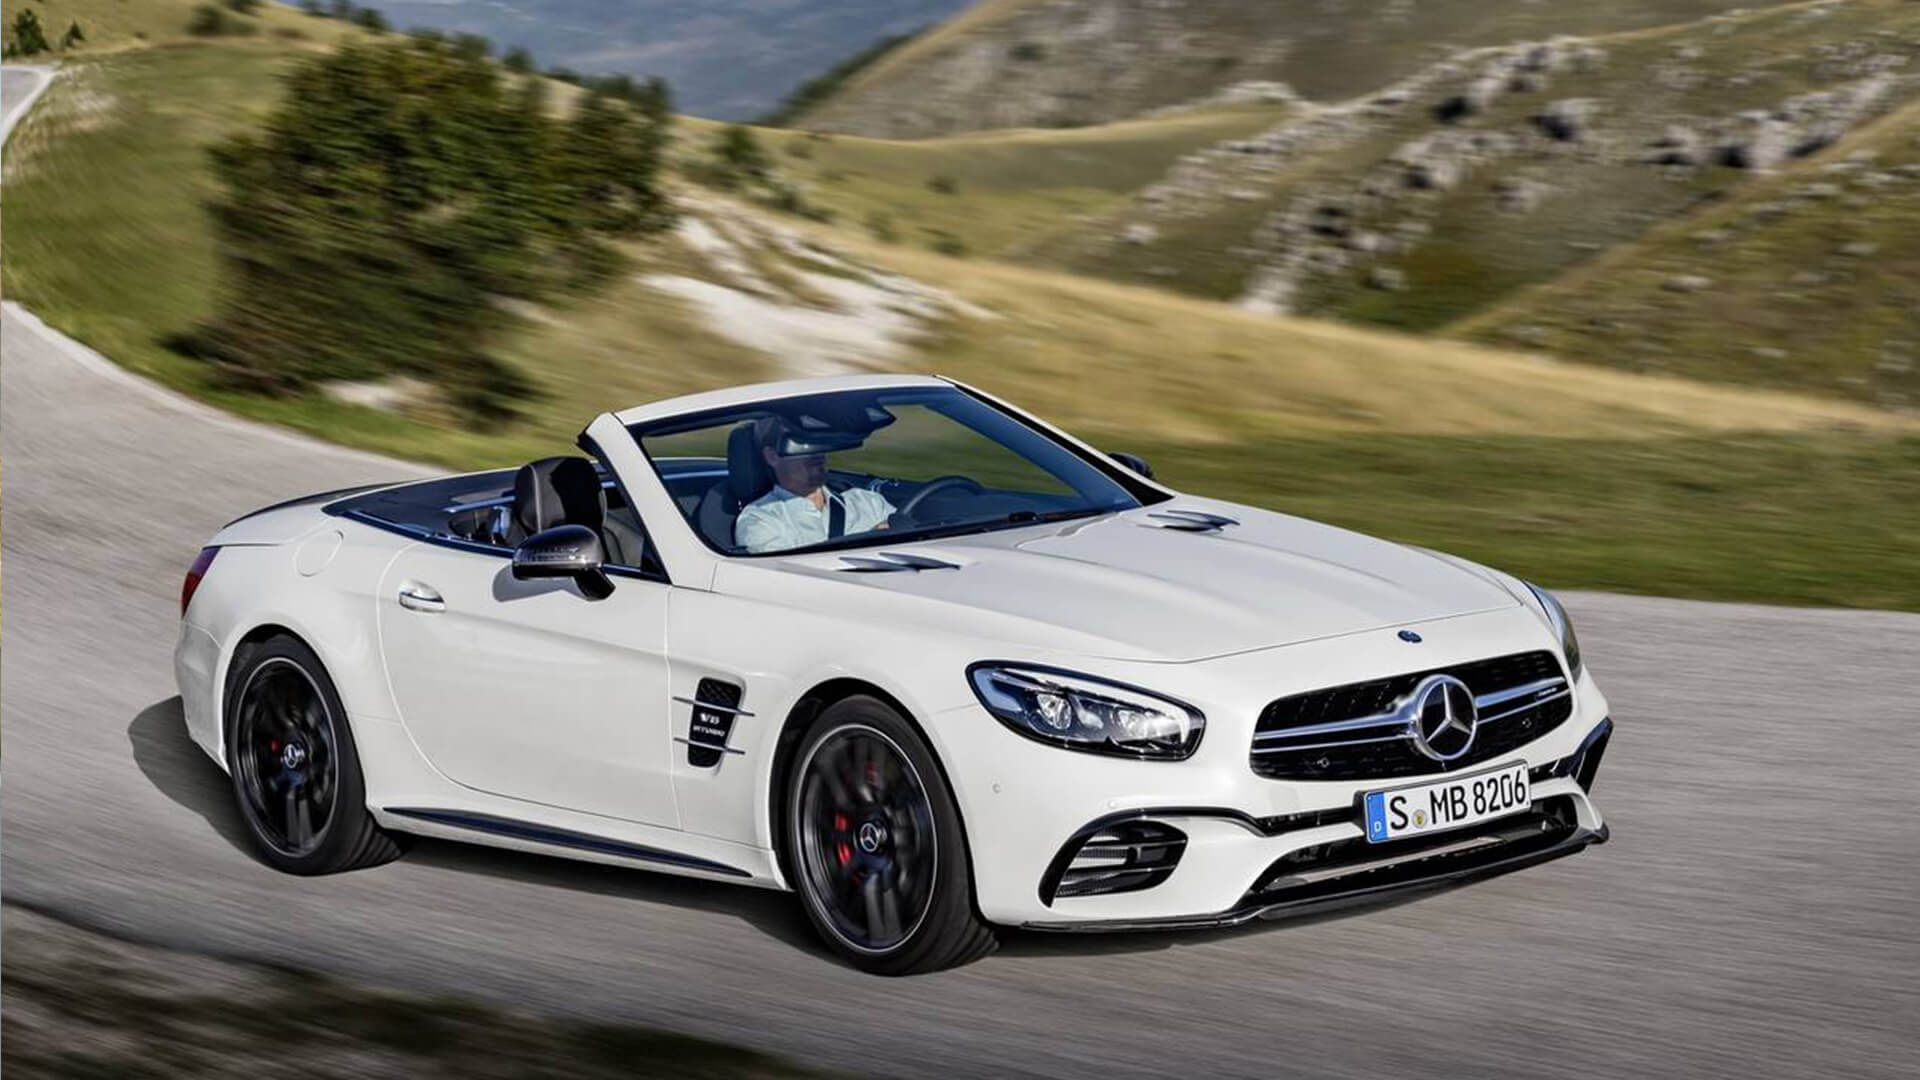 Luxury sports cars 2016 mercedes benz sl class pho2car for Mercedes benz sports cars